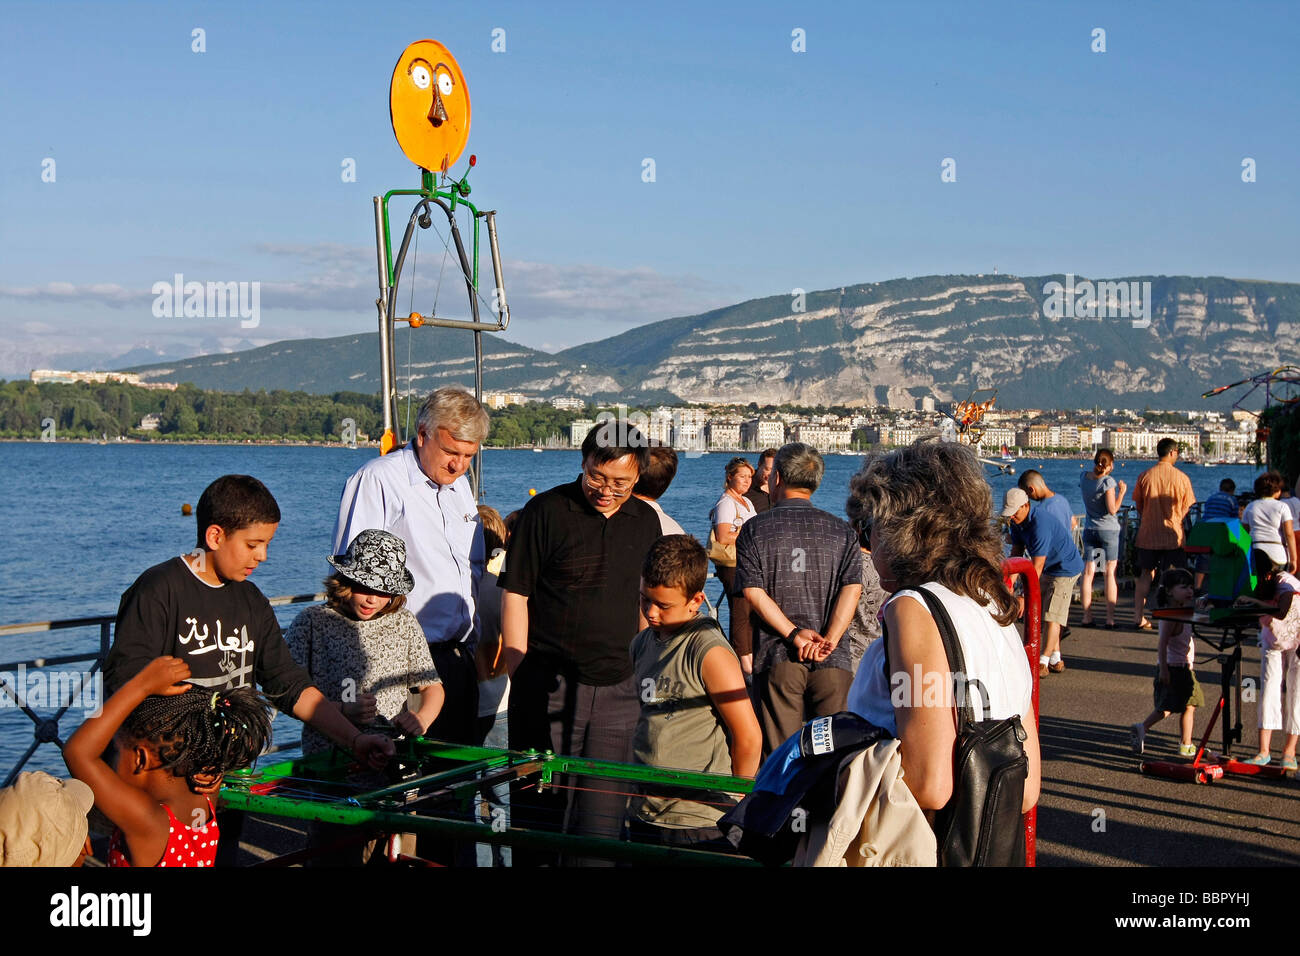 OPEN-AIR PARTY FOR CHILDREN IN THE MON REPOS PARK ON THE BANKS OF LAKE GENEVA, GENEVA, SWITZERLAND - Stock Image